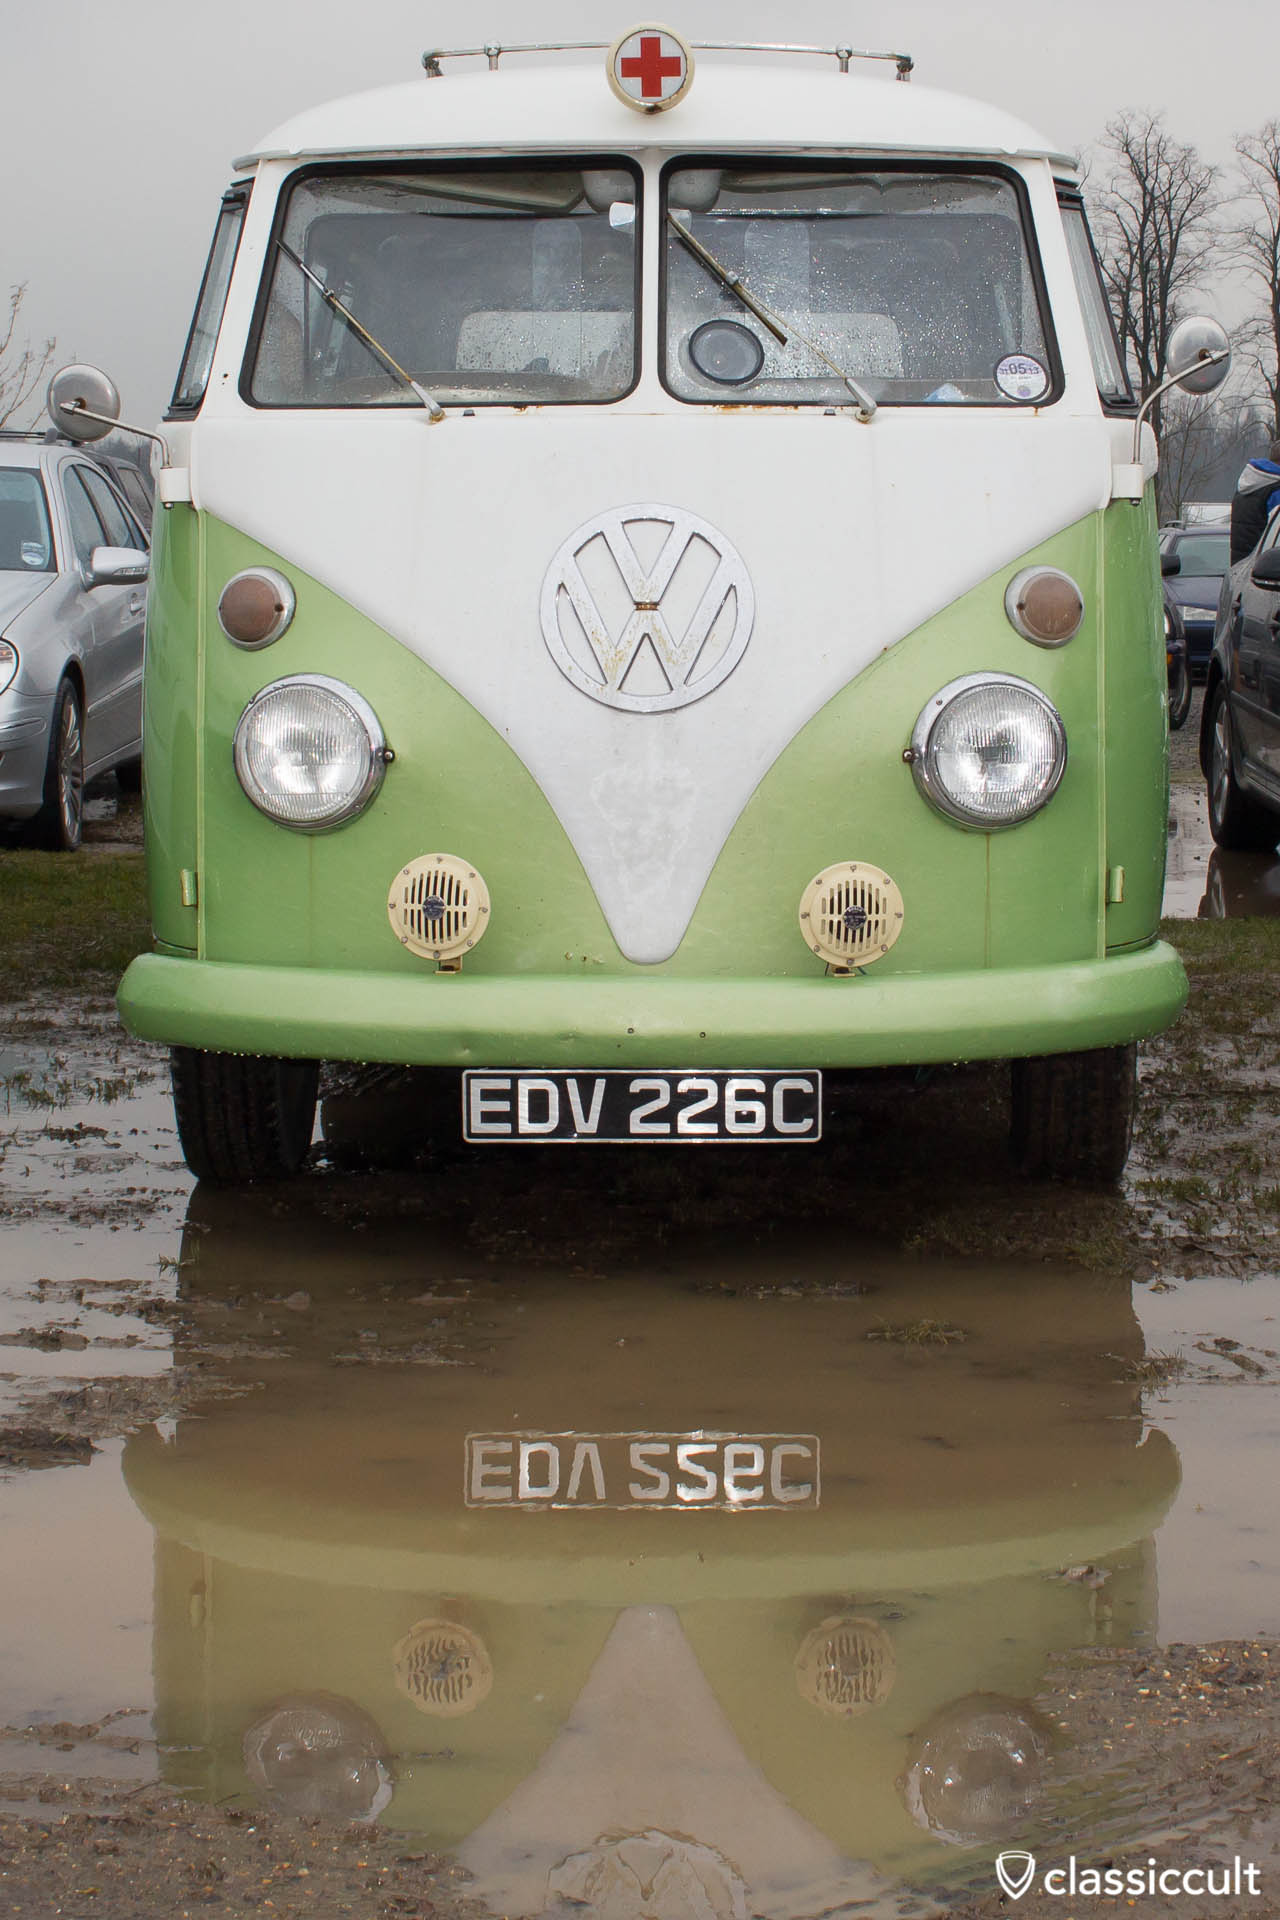 T1 Ambulance mud puddle reflection